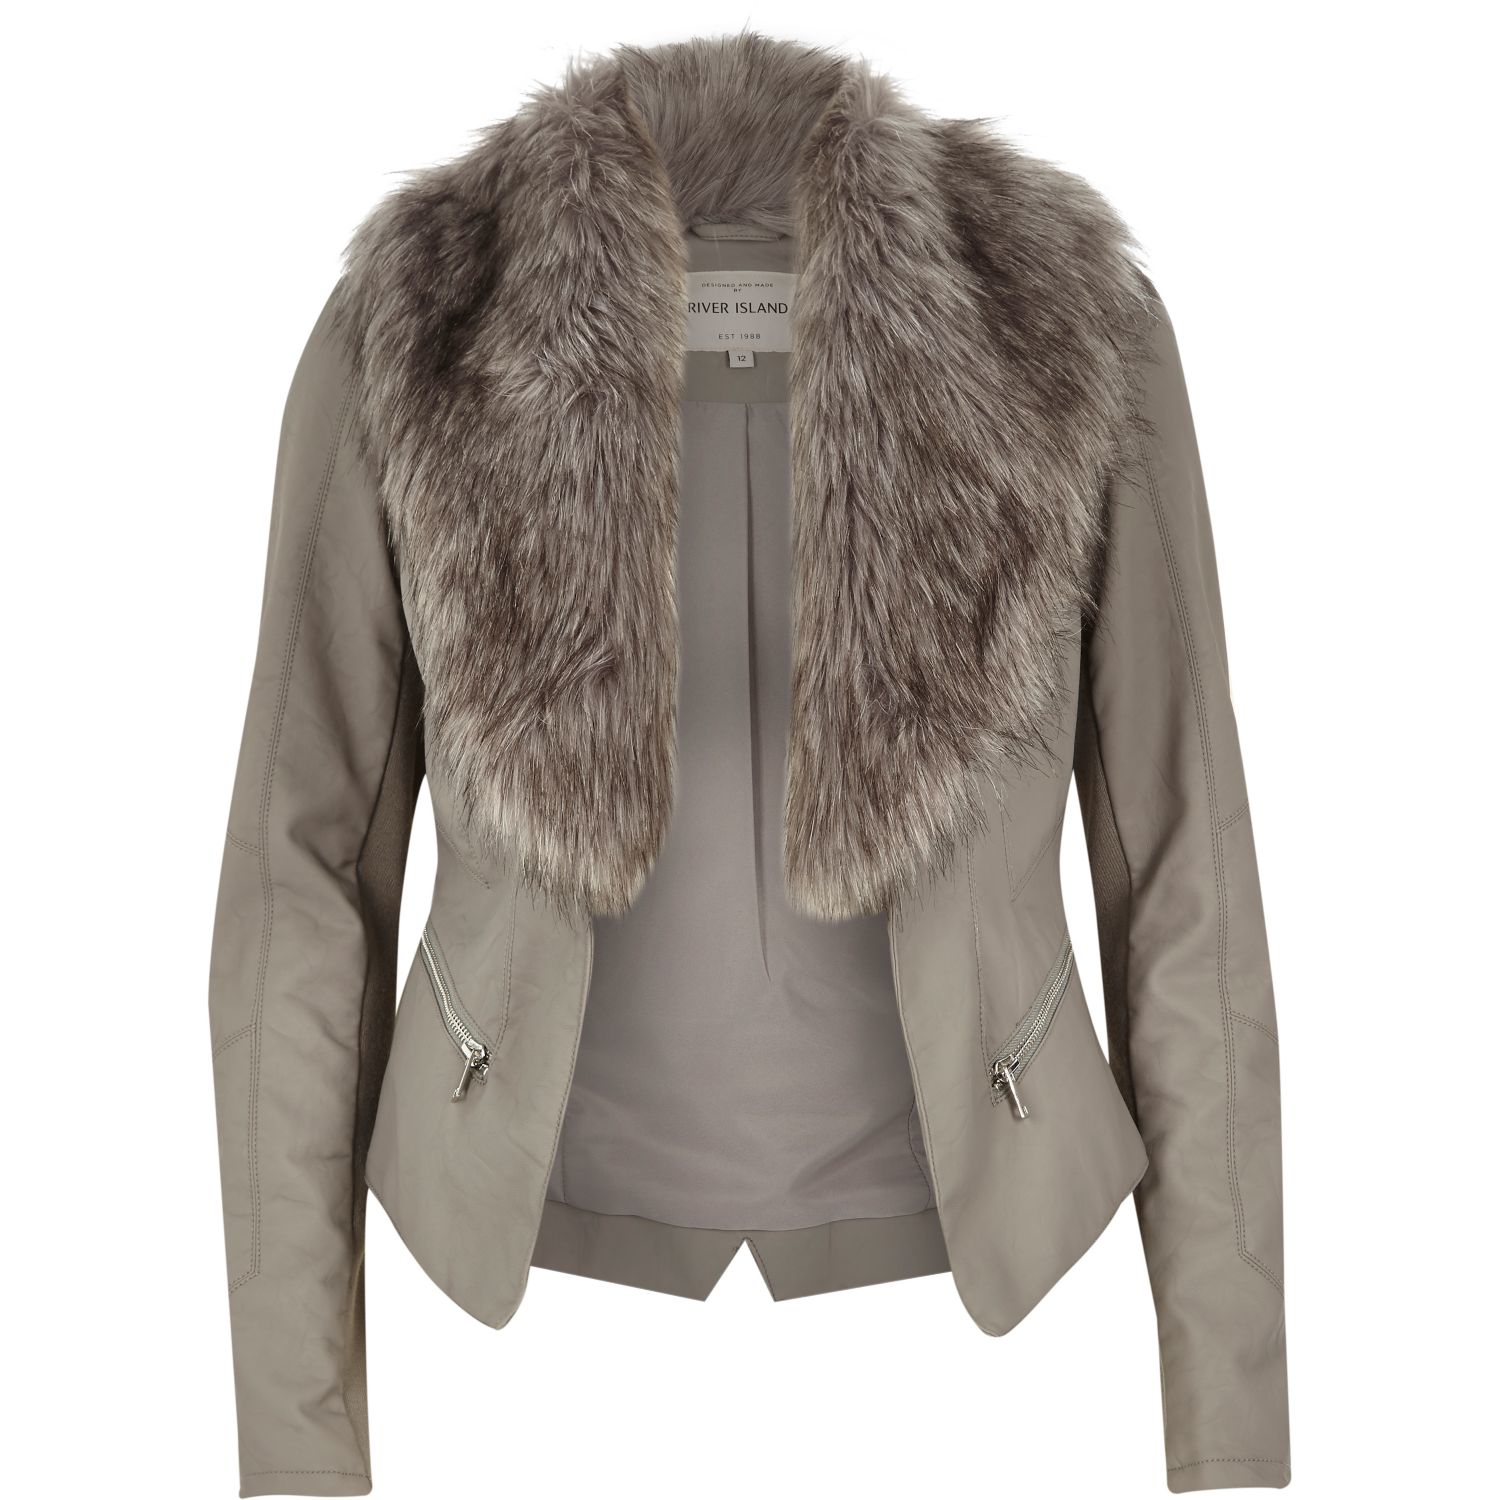 Shop a great selection of Women's Leather & Faux Leather Coats & Jackets at Nordstrom Rack. Find designer Women's Leather & Faux Leather Coats & Jackets up to 70% off and get free shipping on orders over $